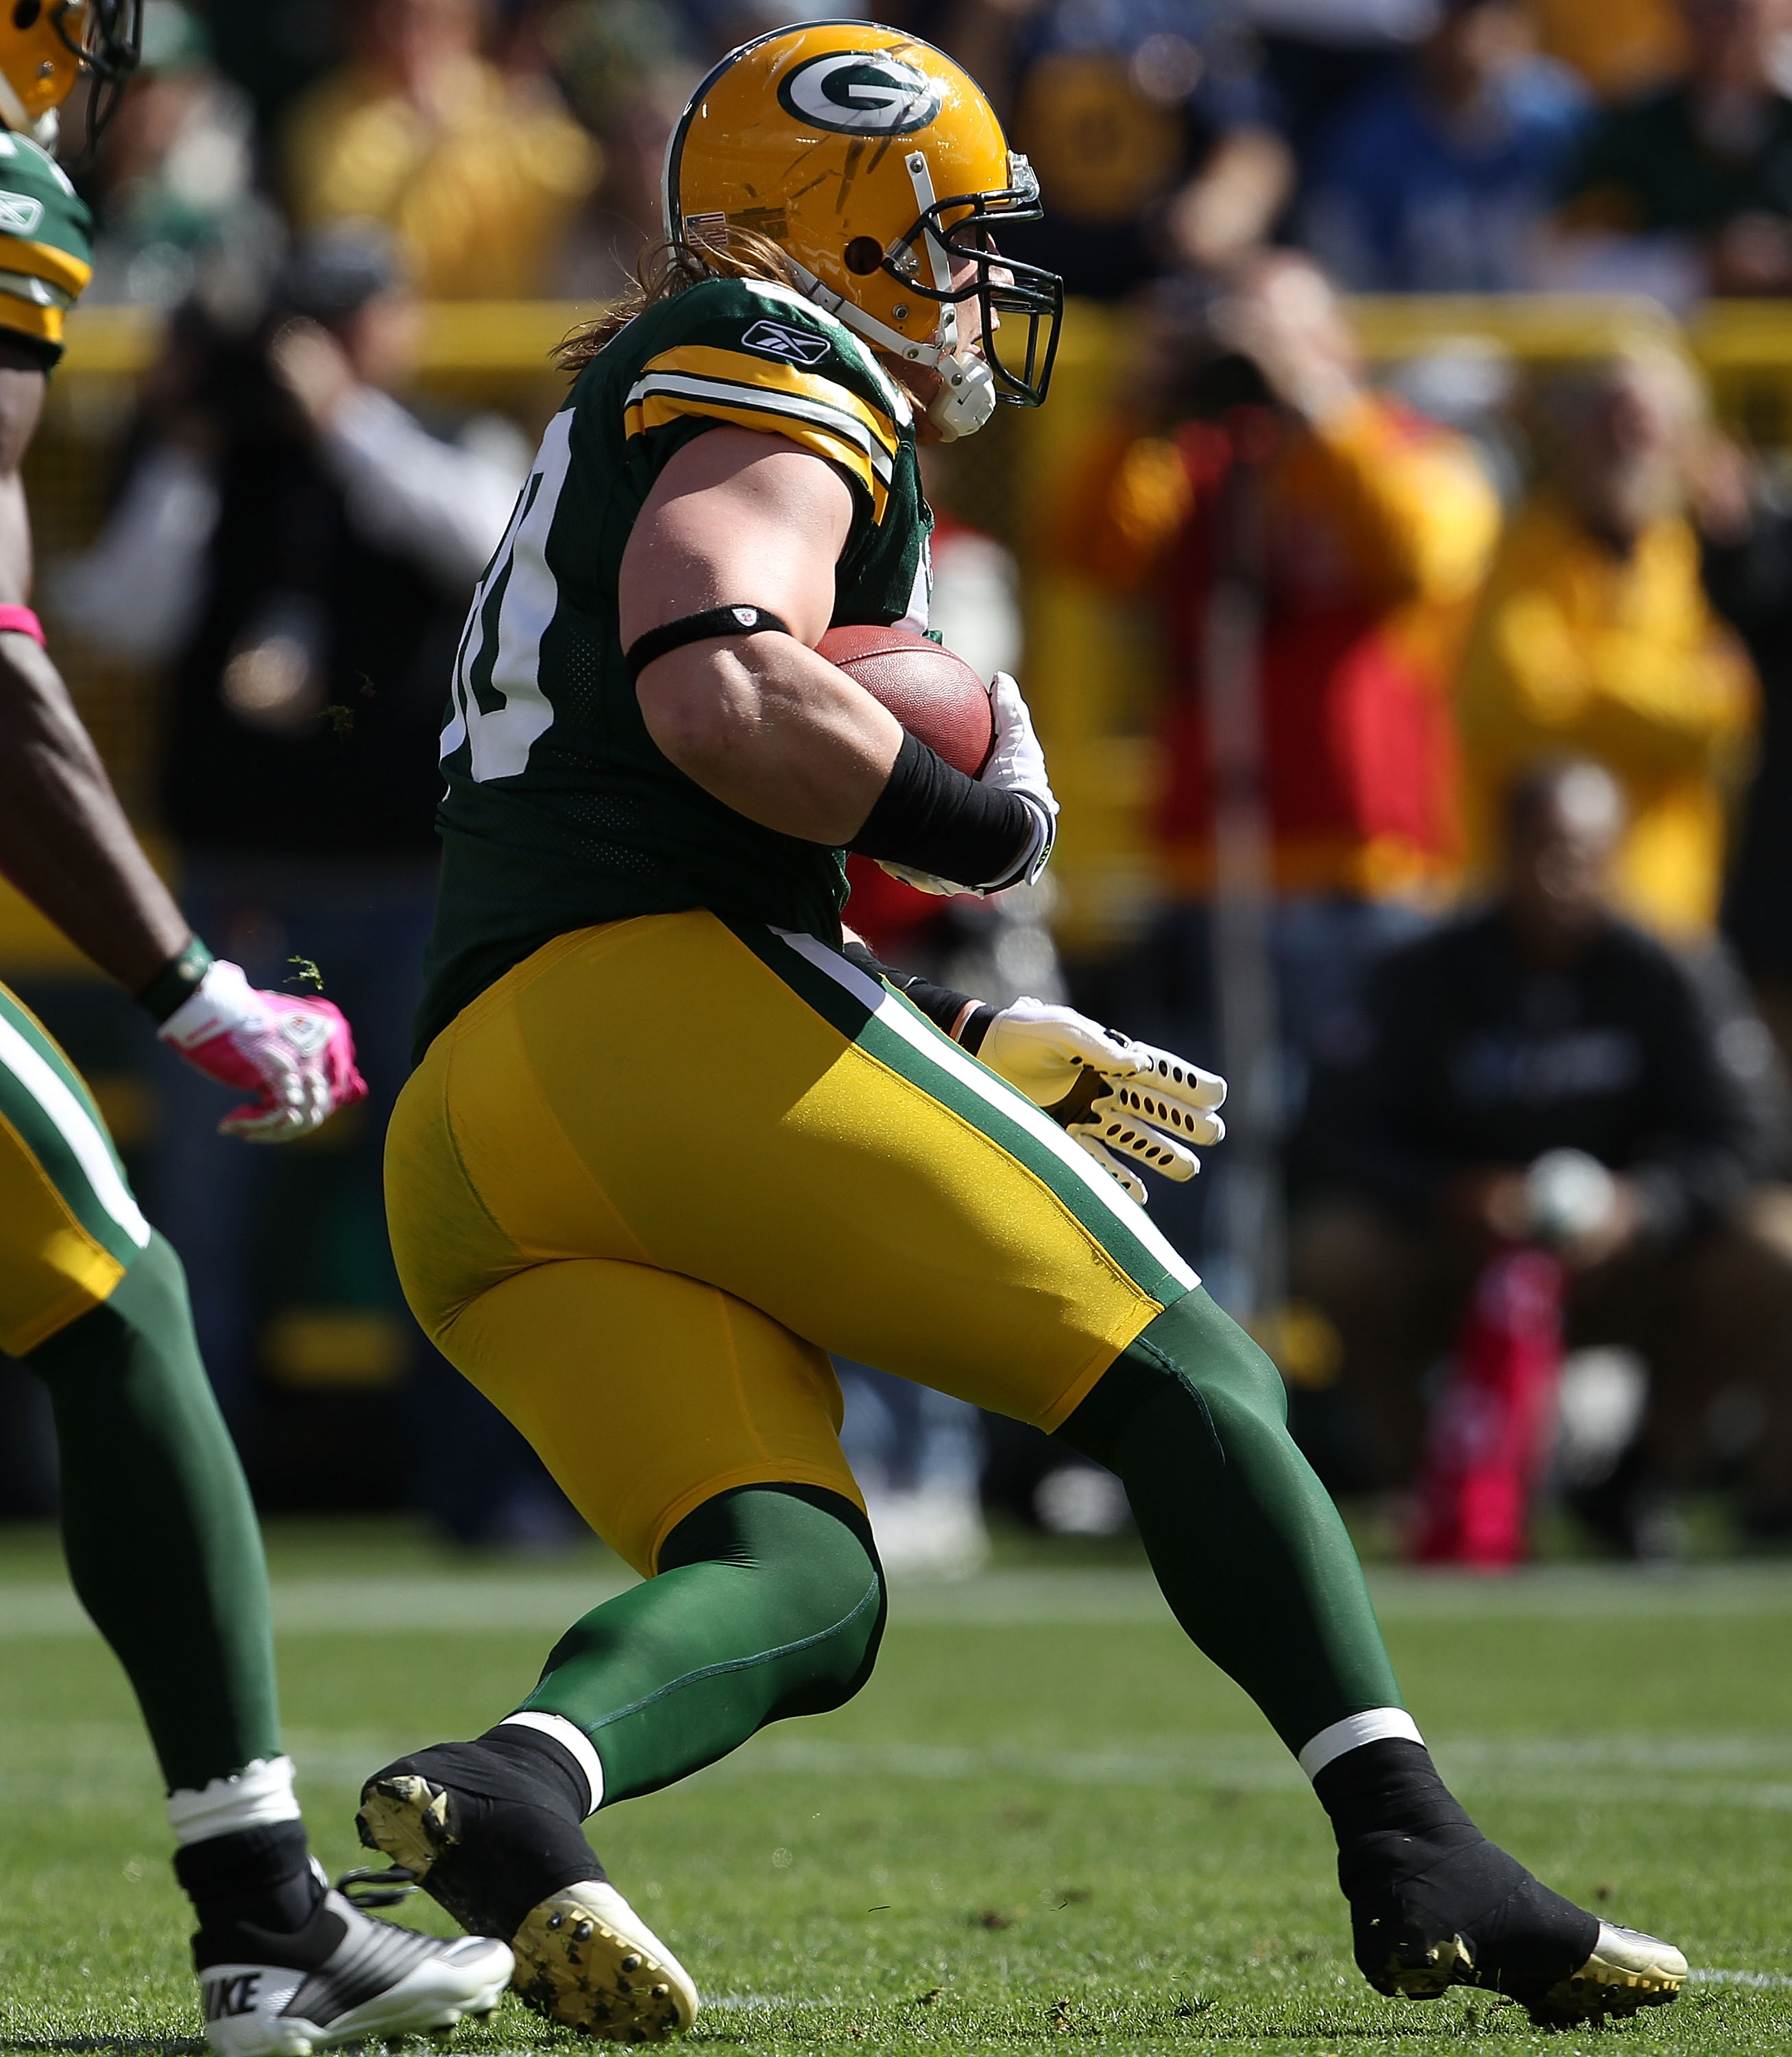 GREEN BAY, WI - OCTOBER 03: A.J. Hawk #50 of the Green Bay Packers runs after intercepting a pass against the Detroit Lions at Lambeau Field on October 3, 2010 in Green Bay, Wisconsin. The Packers defeated the Lions 28-26. (Photo by Jonathan Daniel/Getty